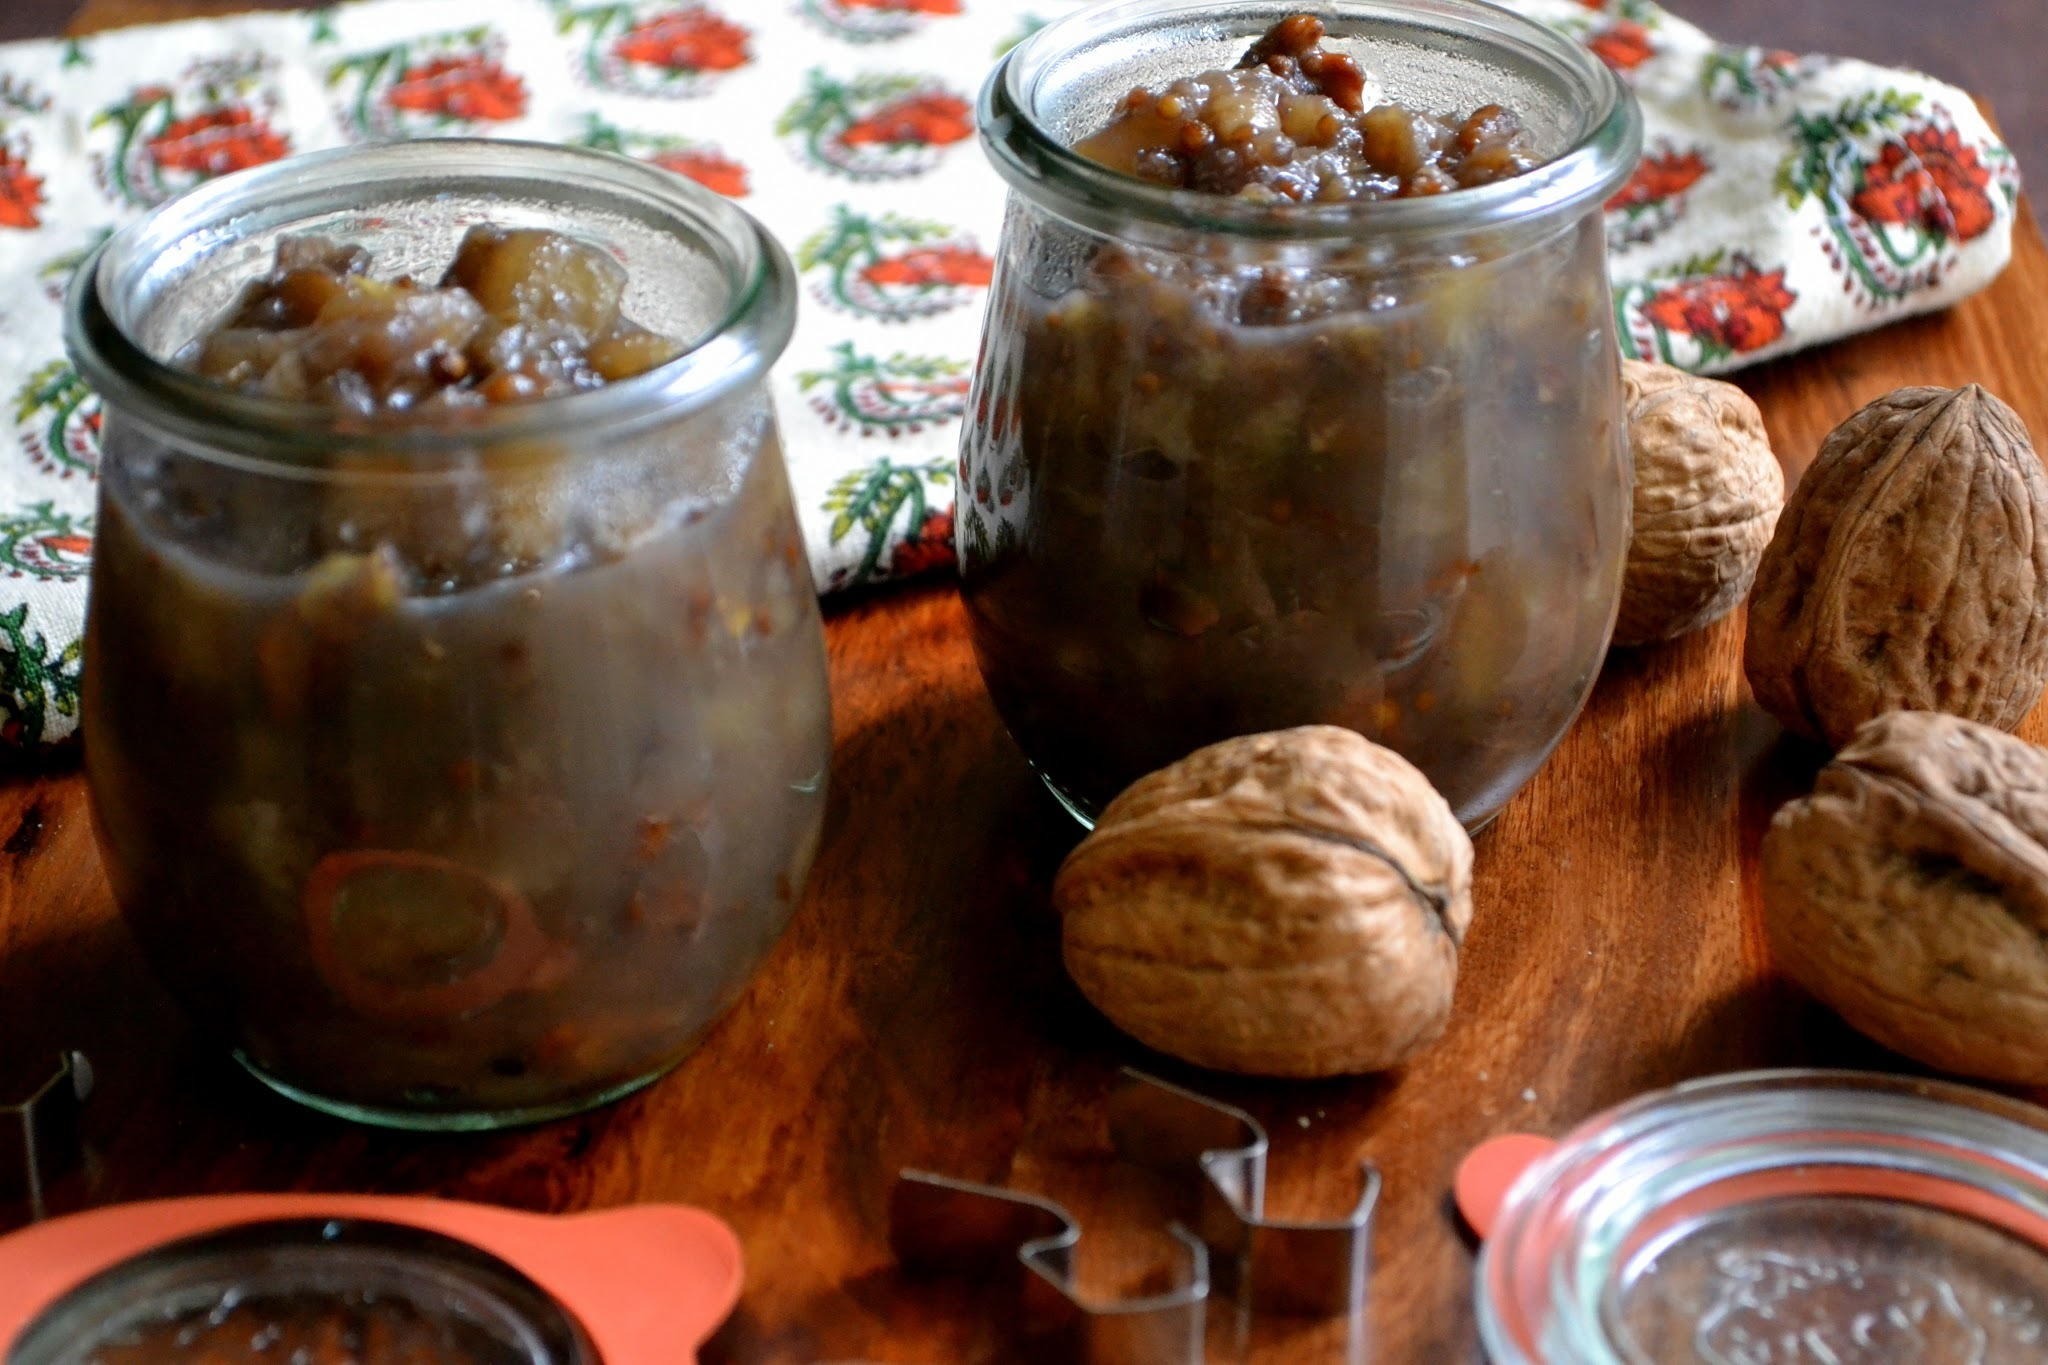 Spiced Pear and Walnut Chutney